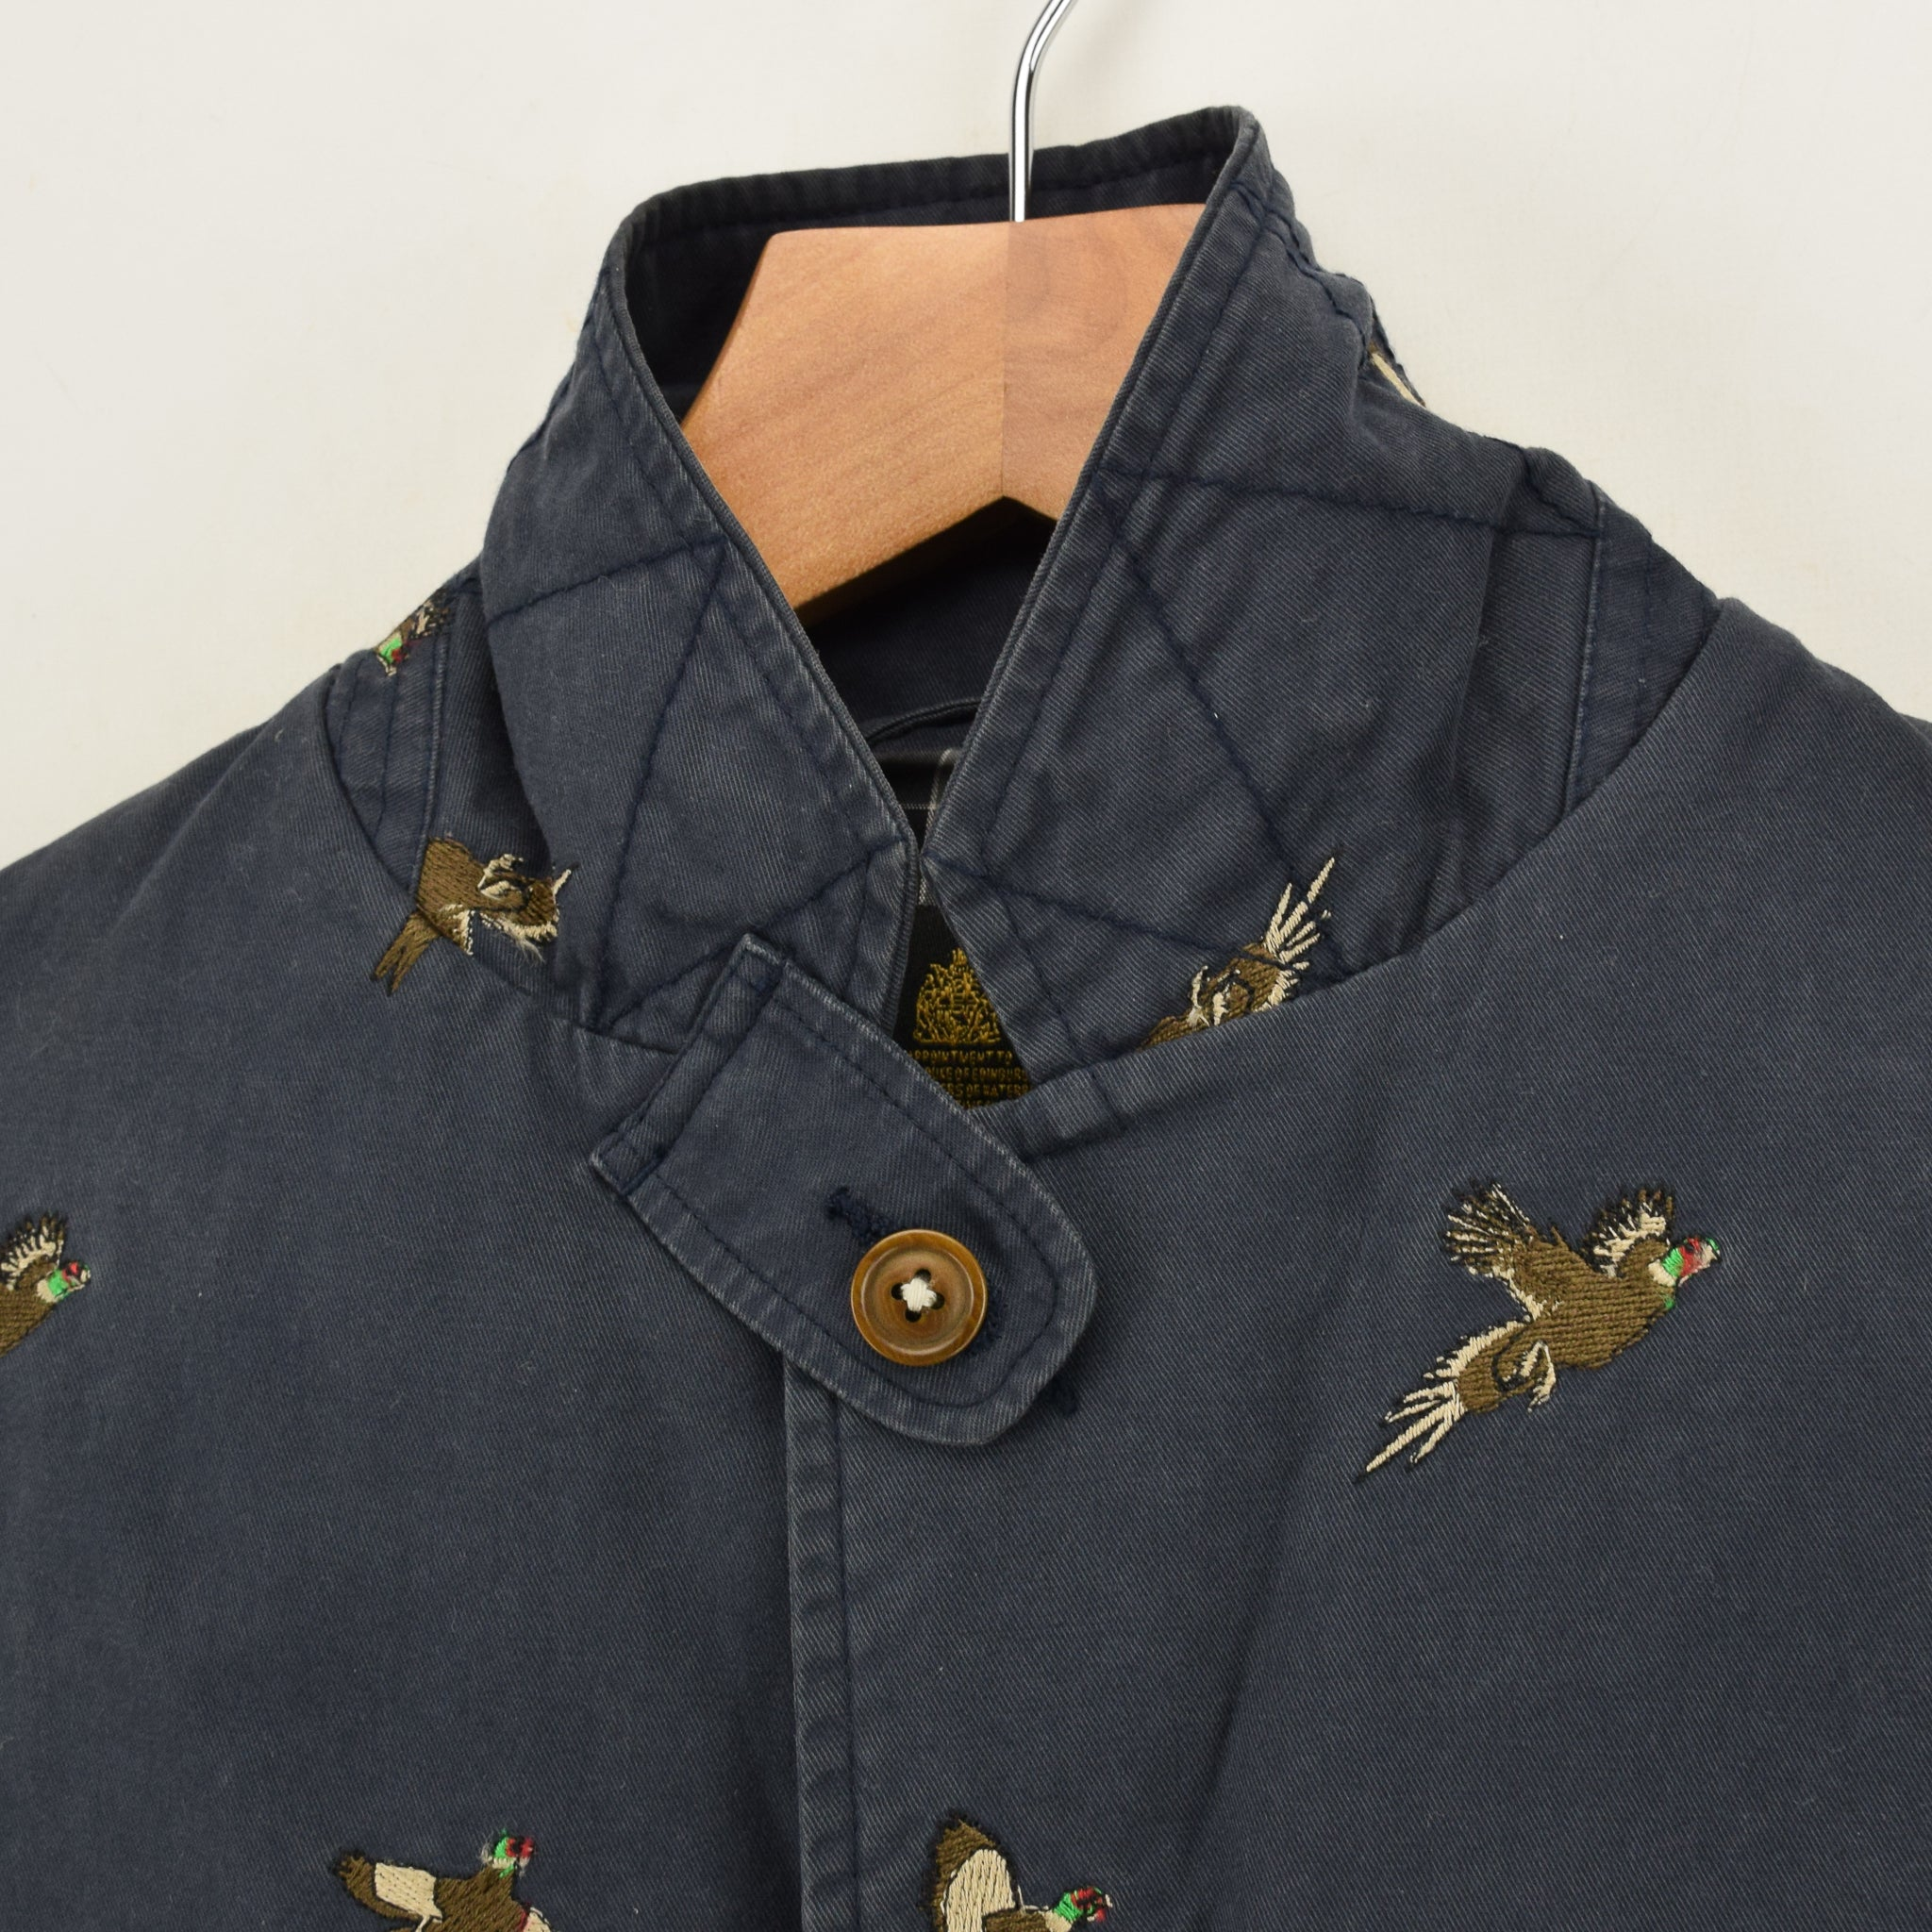 Barbour Navy Blue Cotton Blazer Jacket With Duck Print S collar